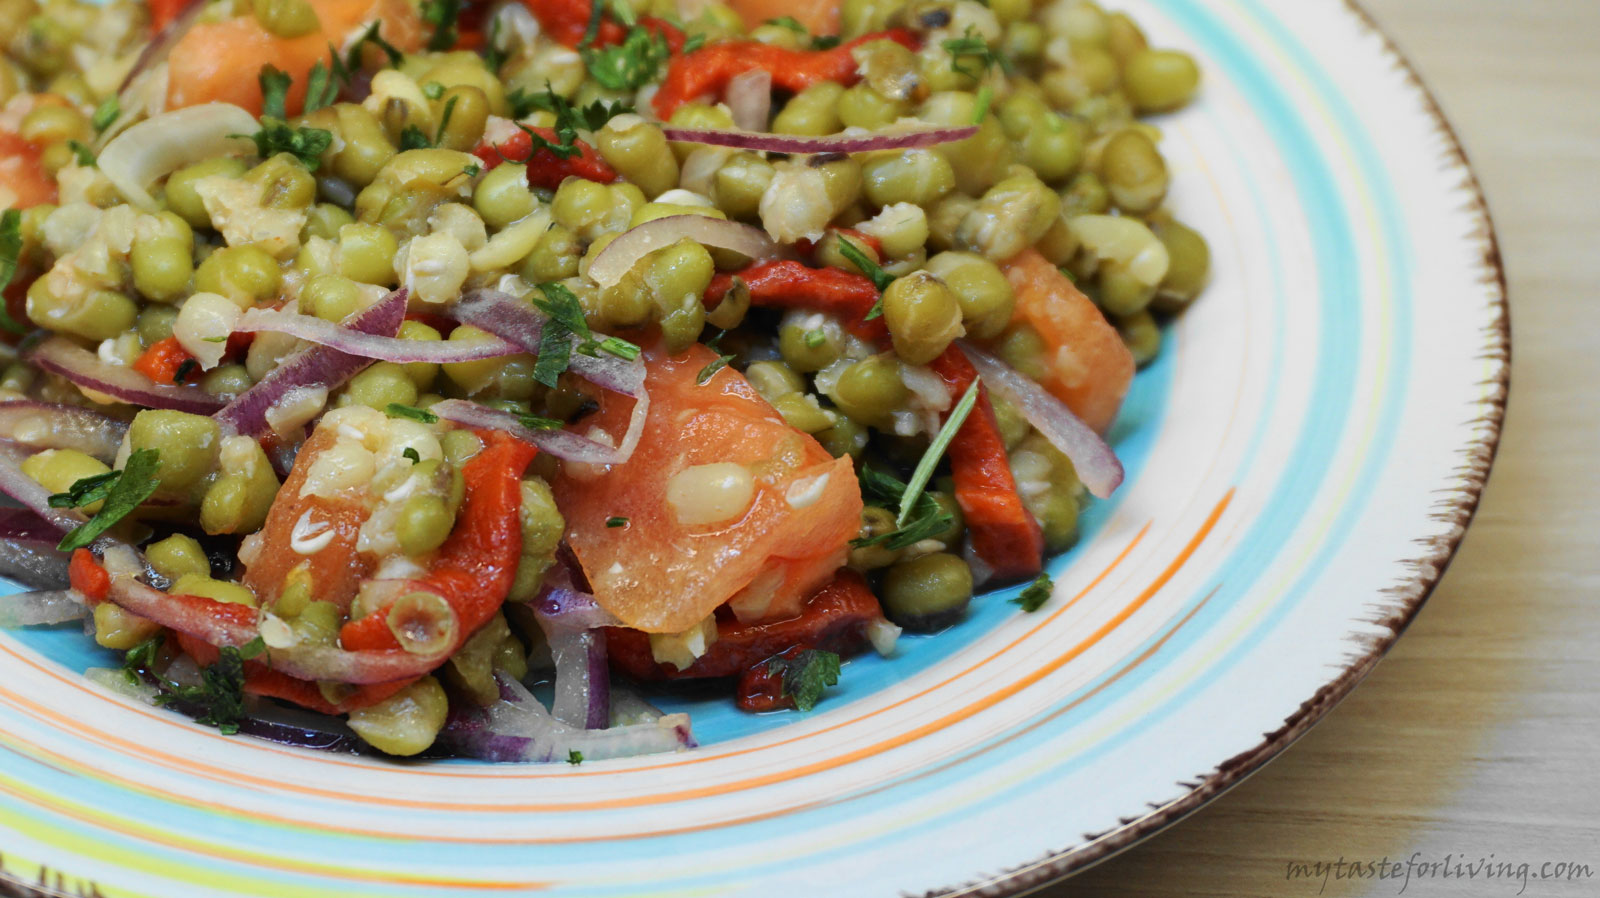 I offer you a fresh suggestion for a recipe with mung bean.